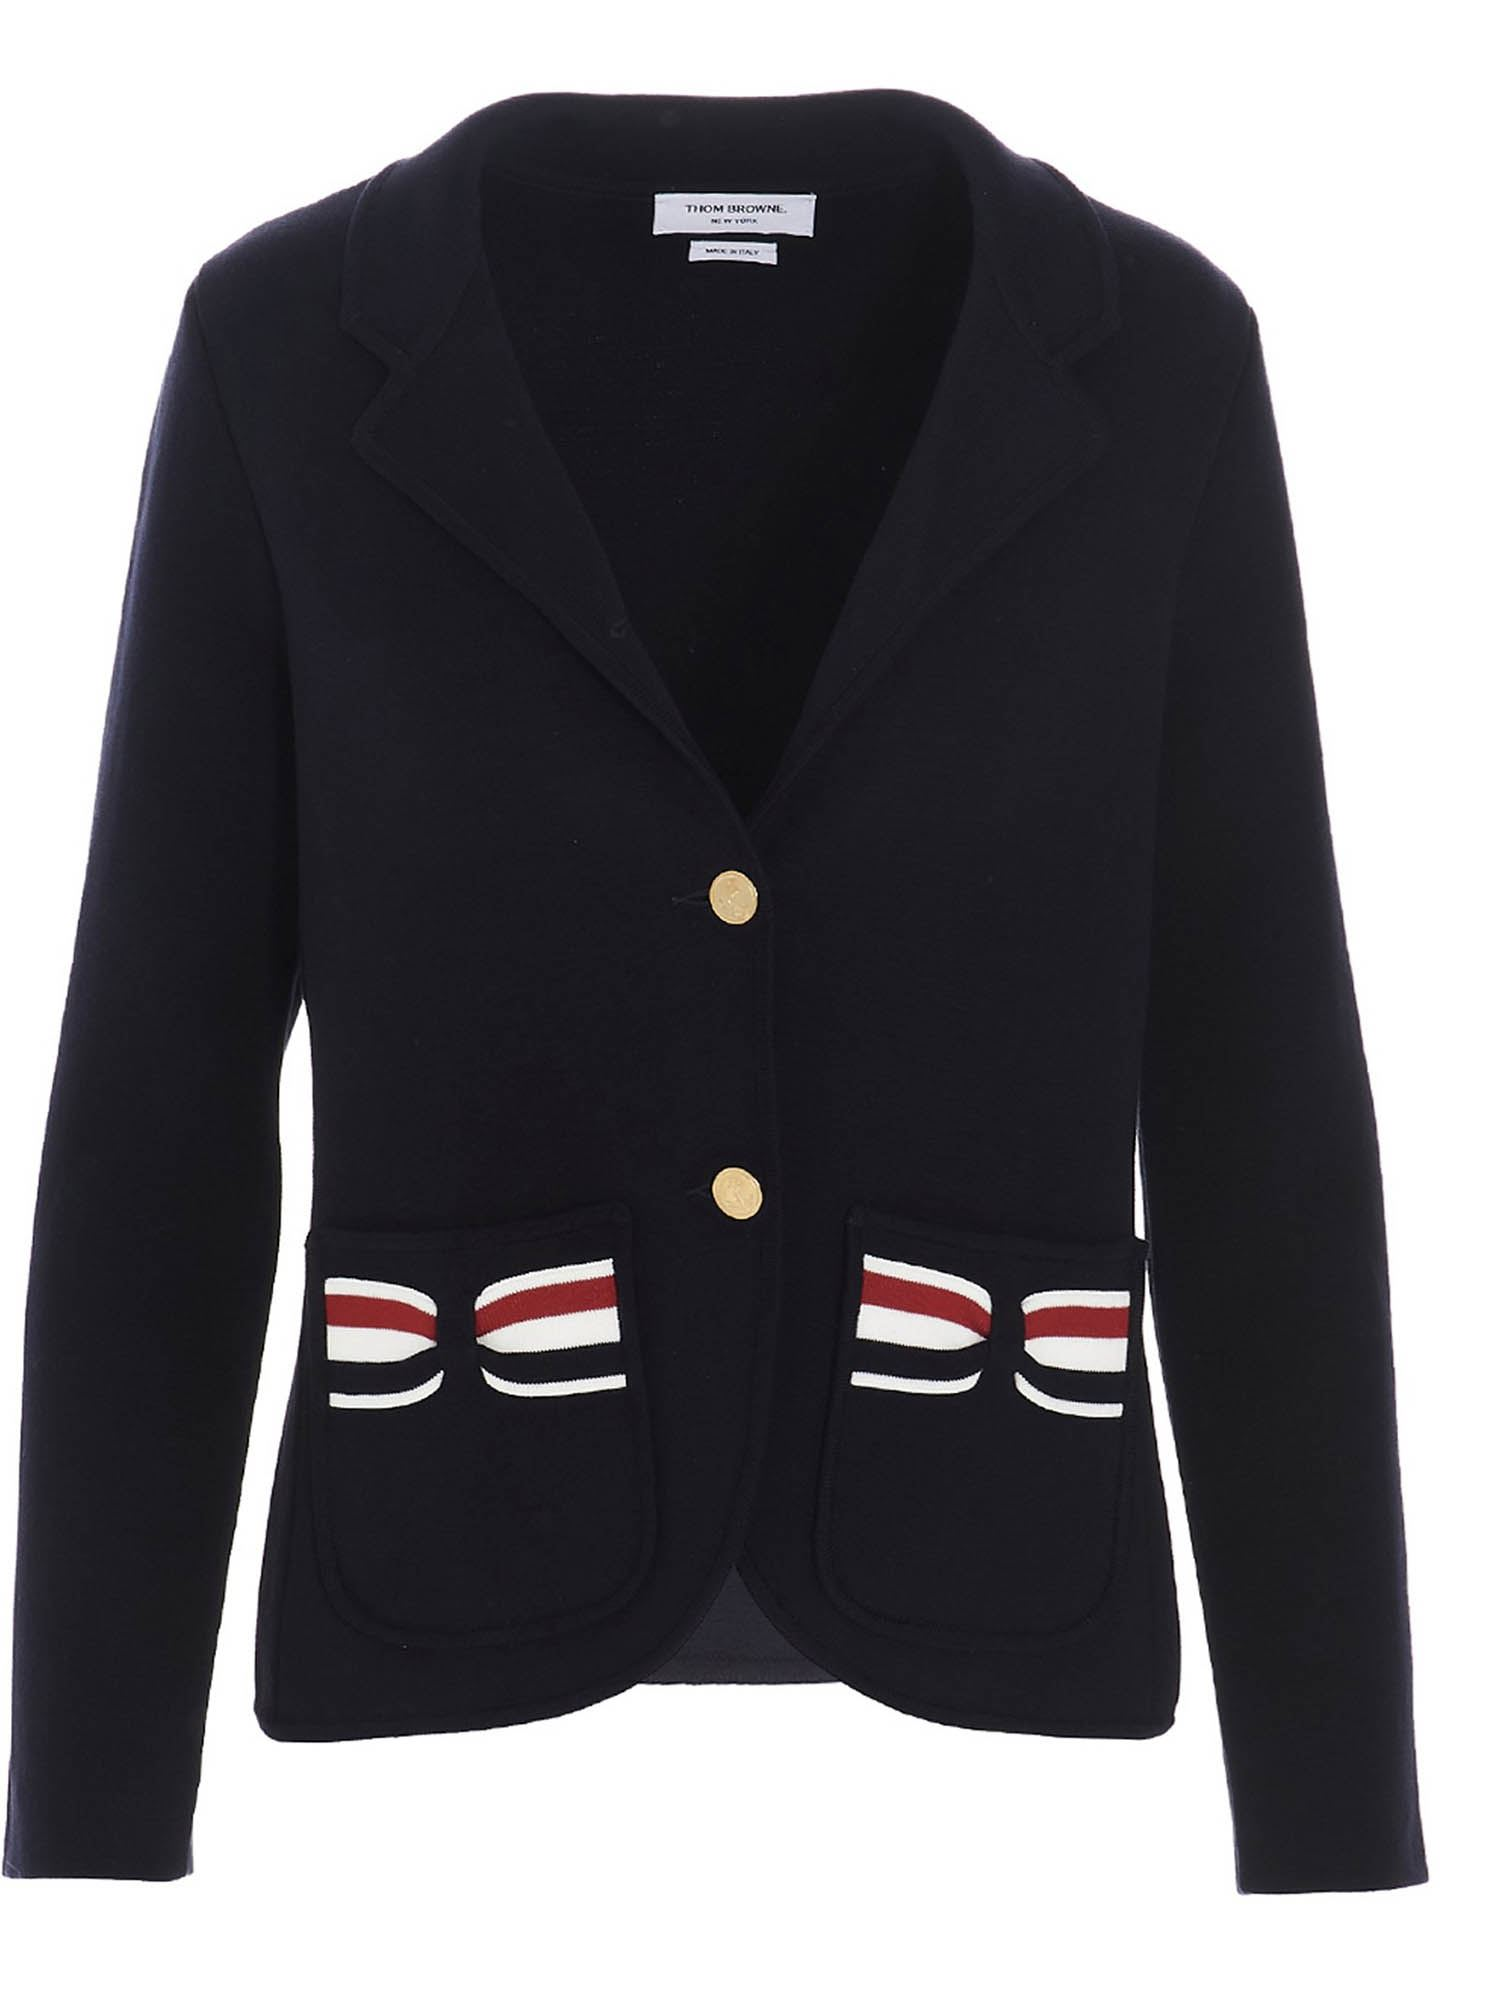 Thom Browne TRICOLOR BOW BLAZER IN BLUE